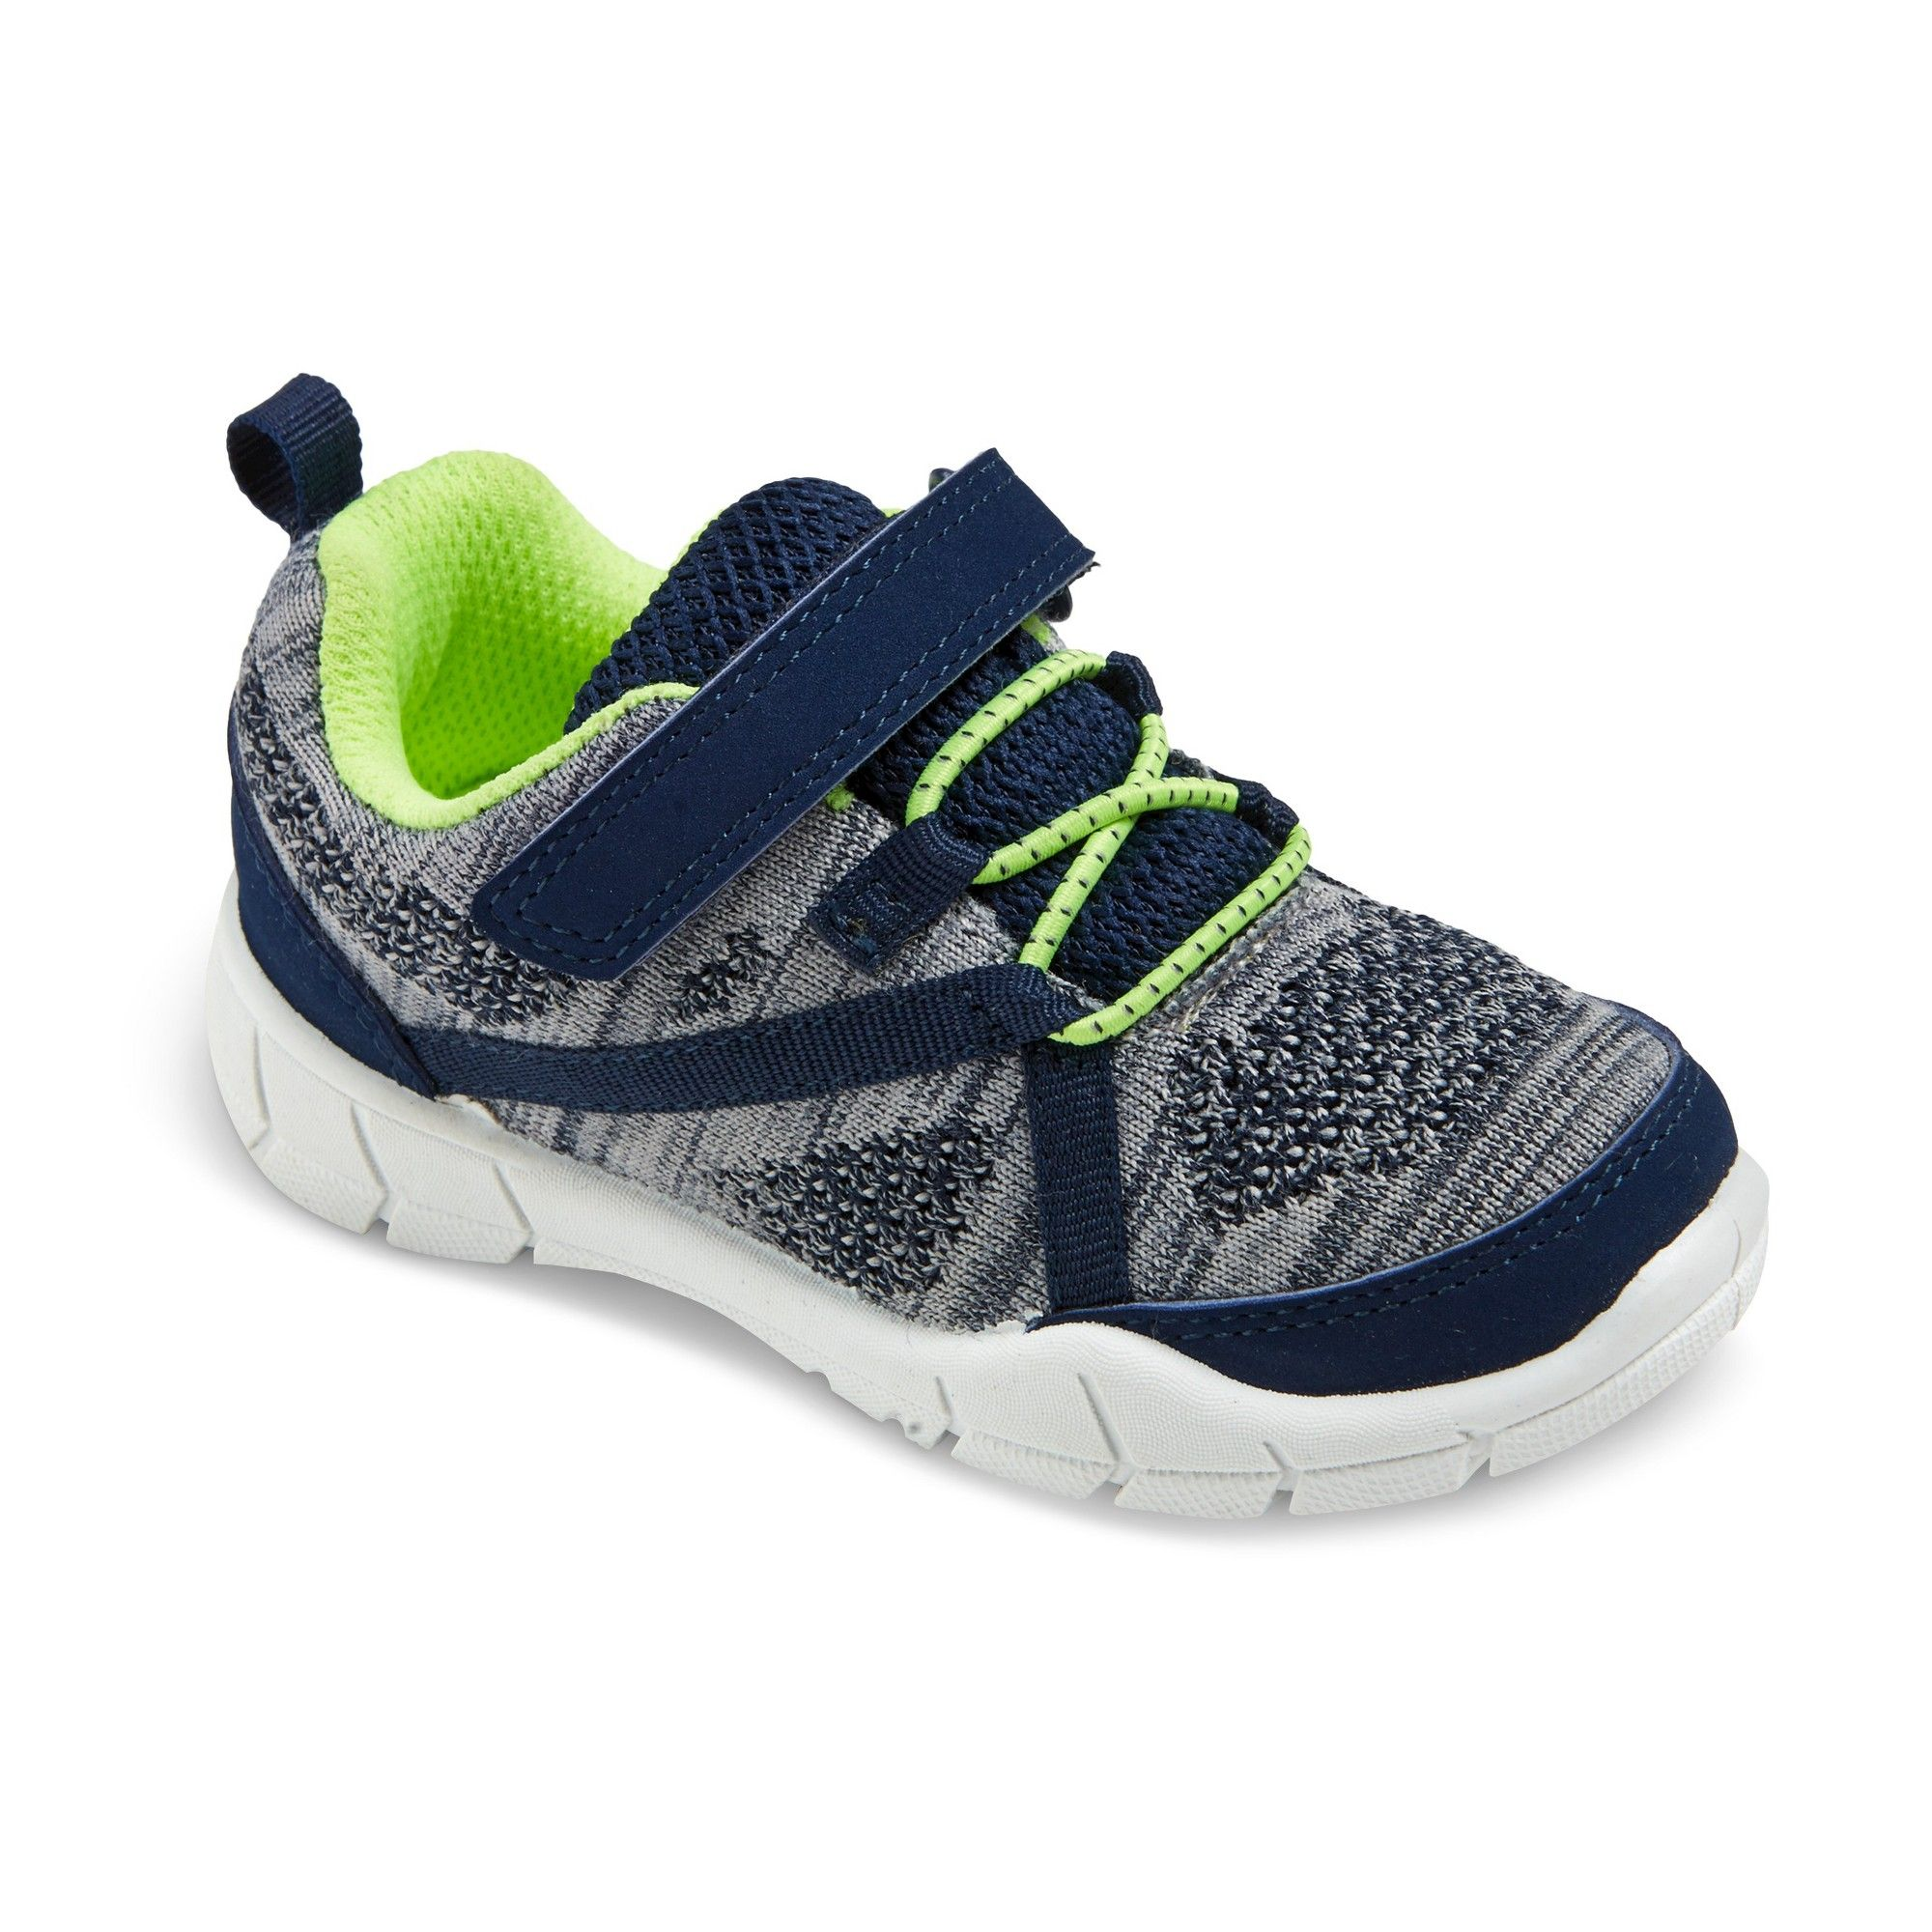 Toddler Boys Madison Sneakers Just e You Made by Carter s Navy